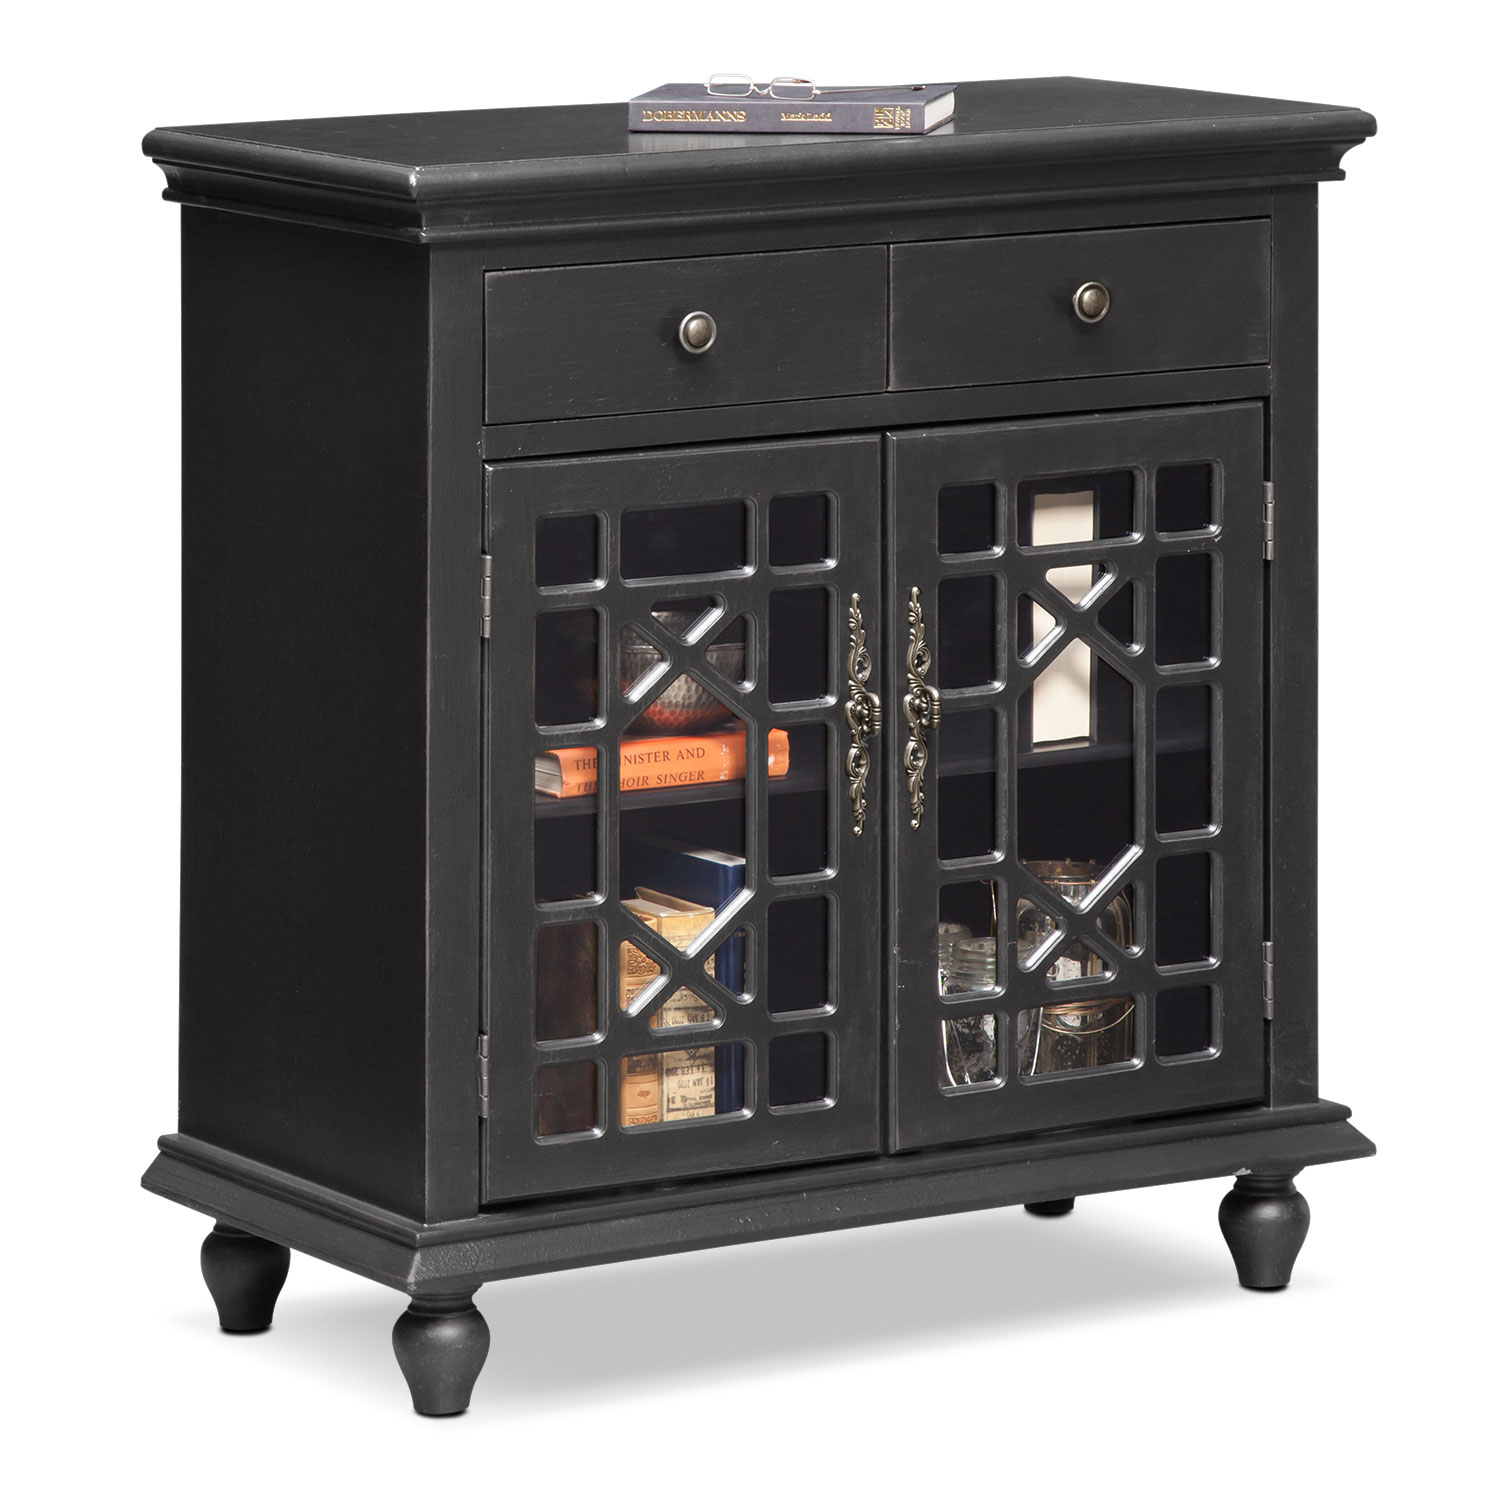 Grenoble Accent Cabinet - Black